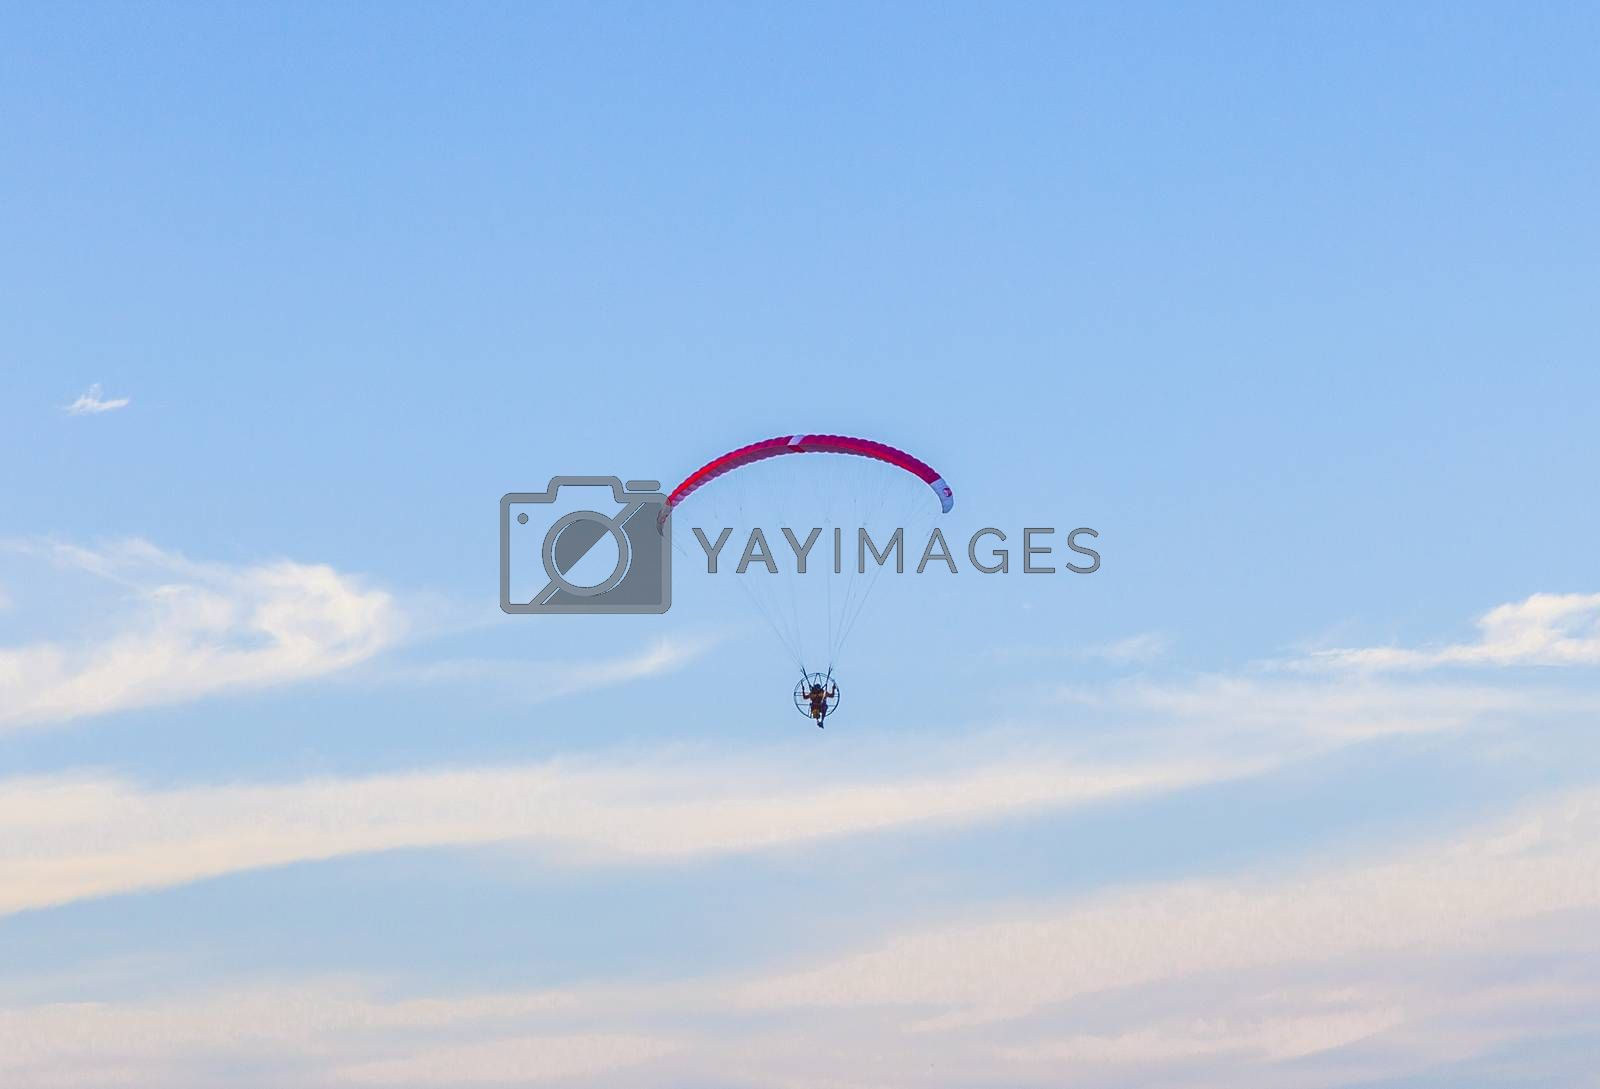 MIAMI, USA - JULY 26: Paraglider flying along the beach on July 26, 2010 in Miami, USA. In the USA powered paragliding is minimally regulated and requires no licence.